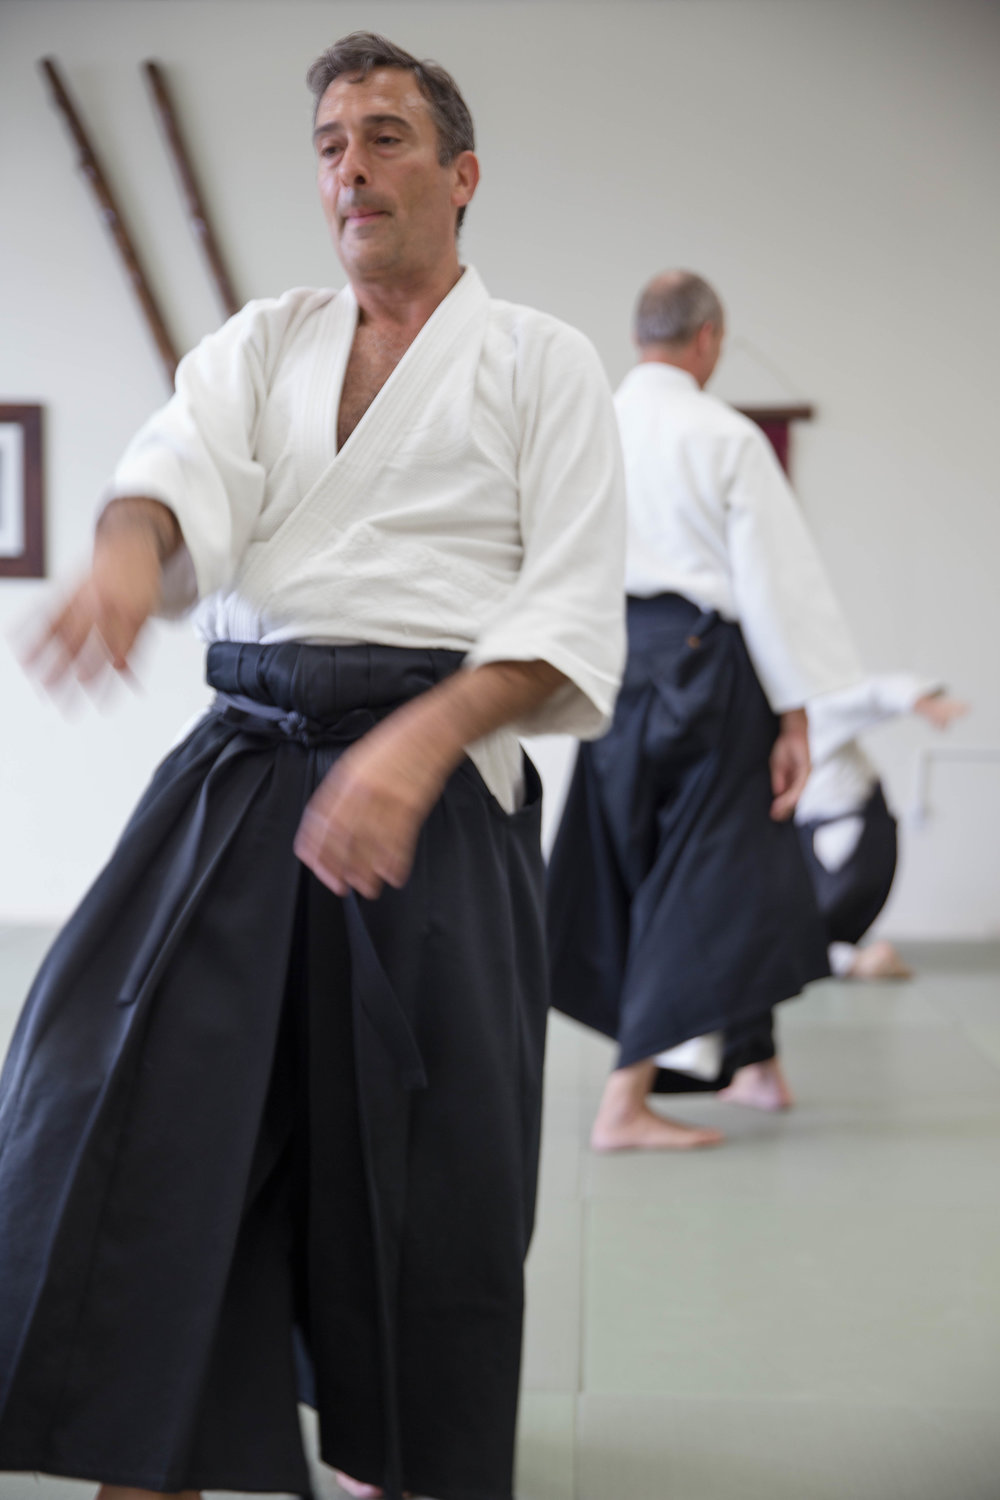 lower resolution-Saturday-May-13-2017-Lars Sensei-Friendship Seminar-NOLA Aikido-Julia (111 of 228).jpg